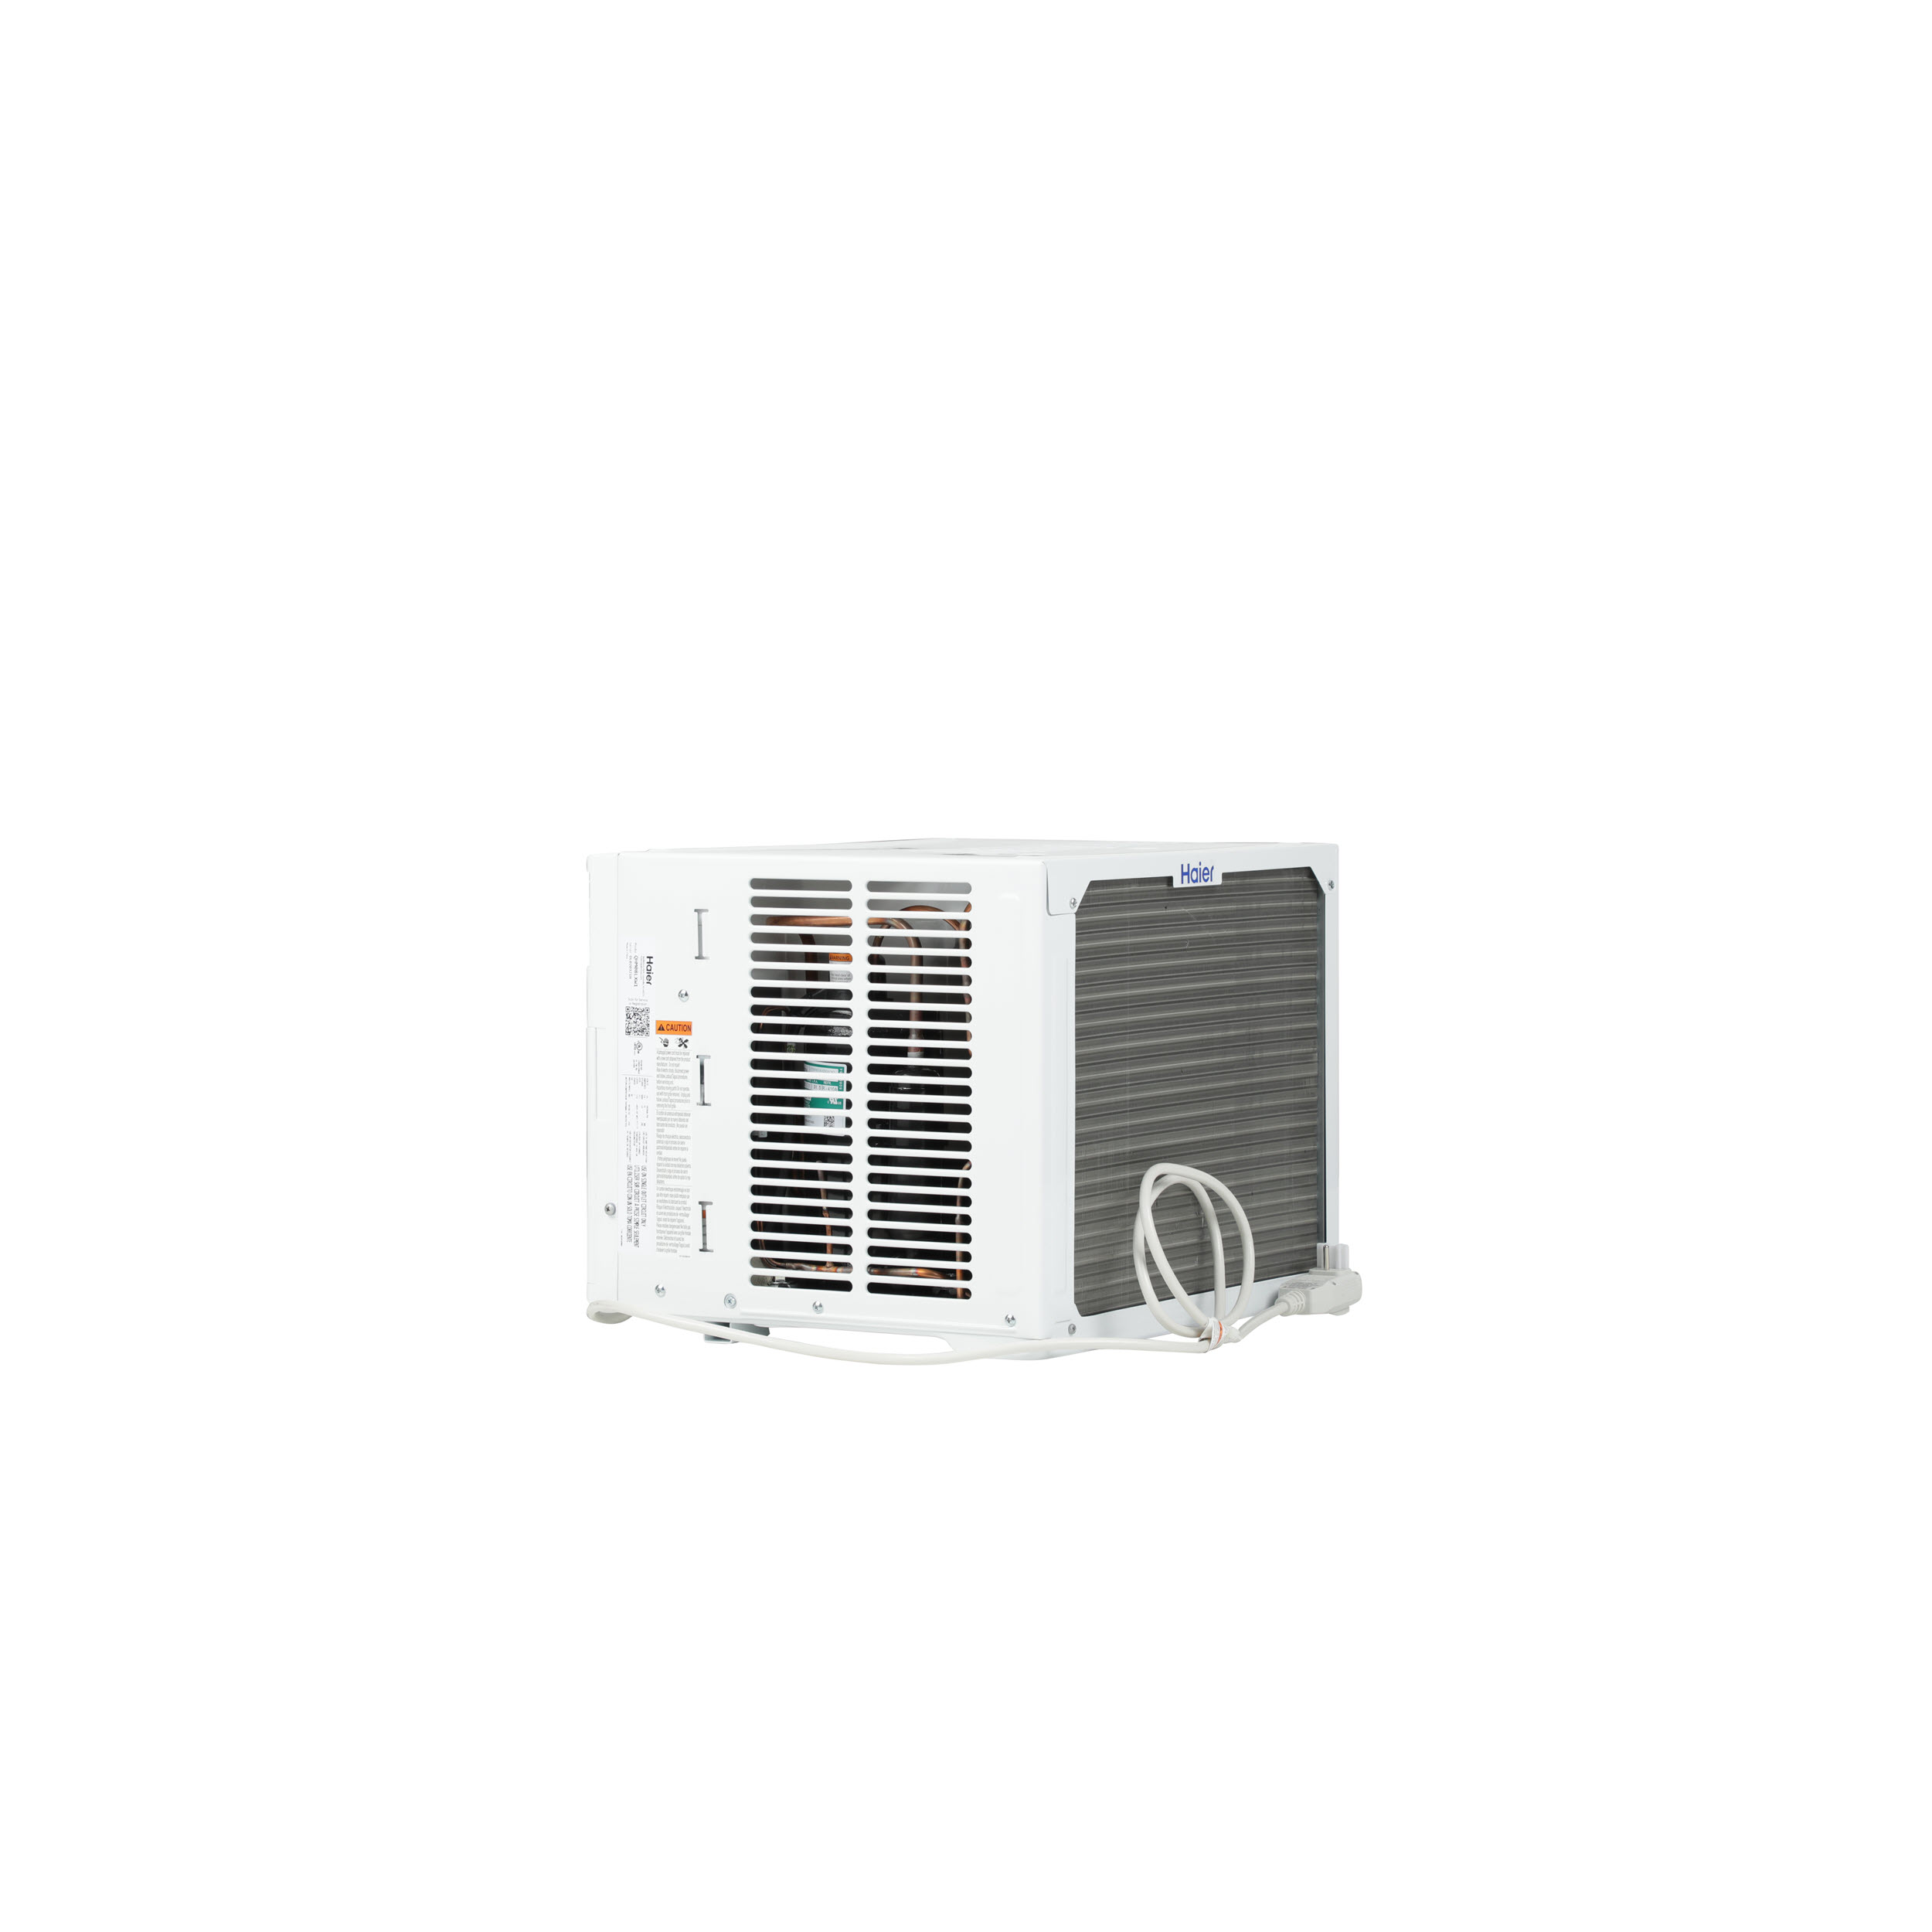 Model: QHM18DX | Haier ENERGY STAR® 230 Volt Electronic Room Air Conditioner